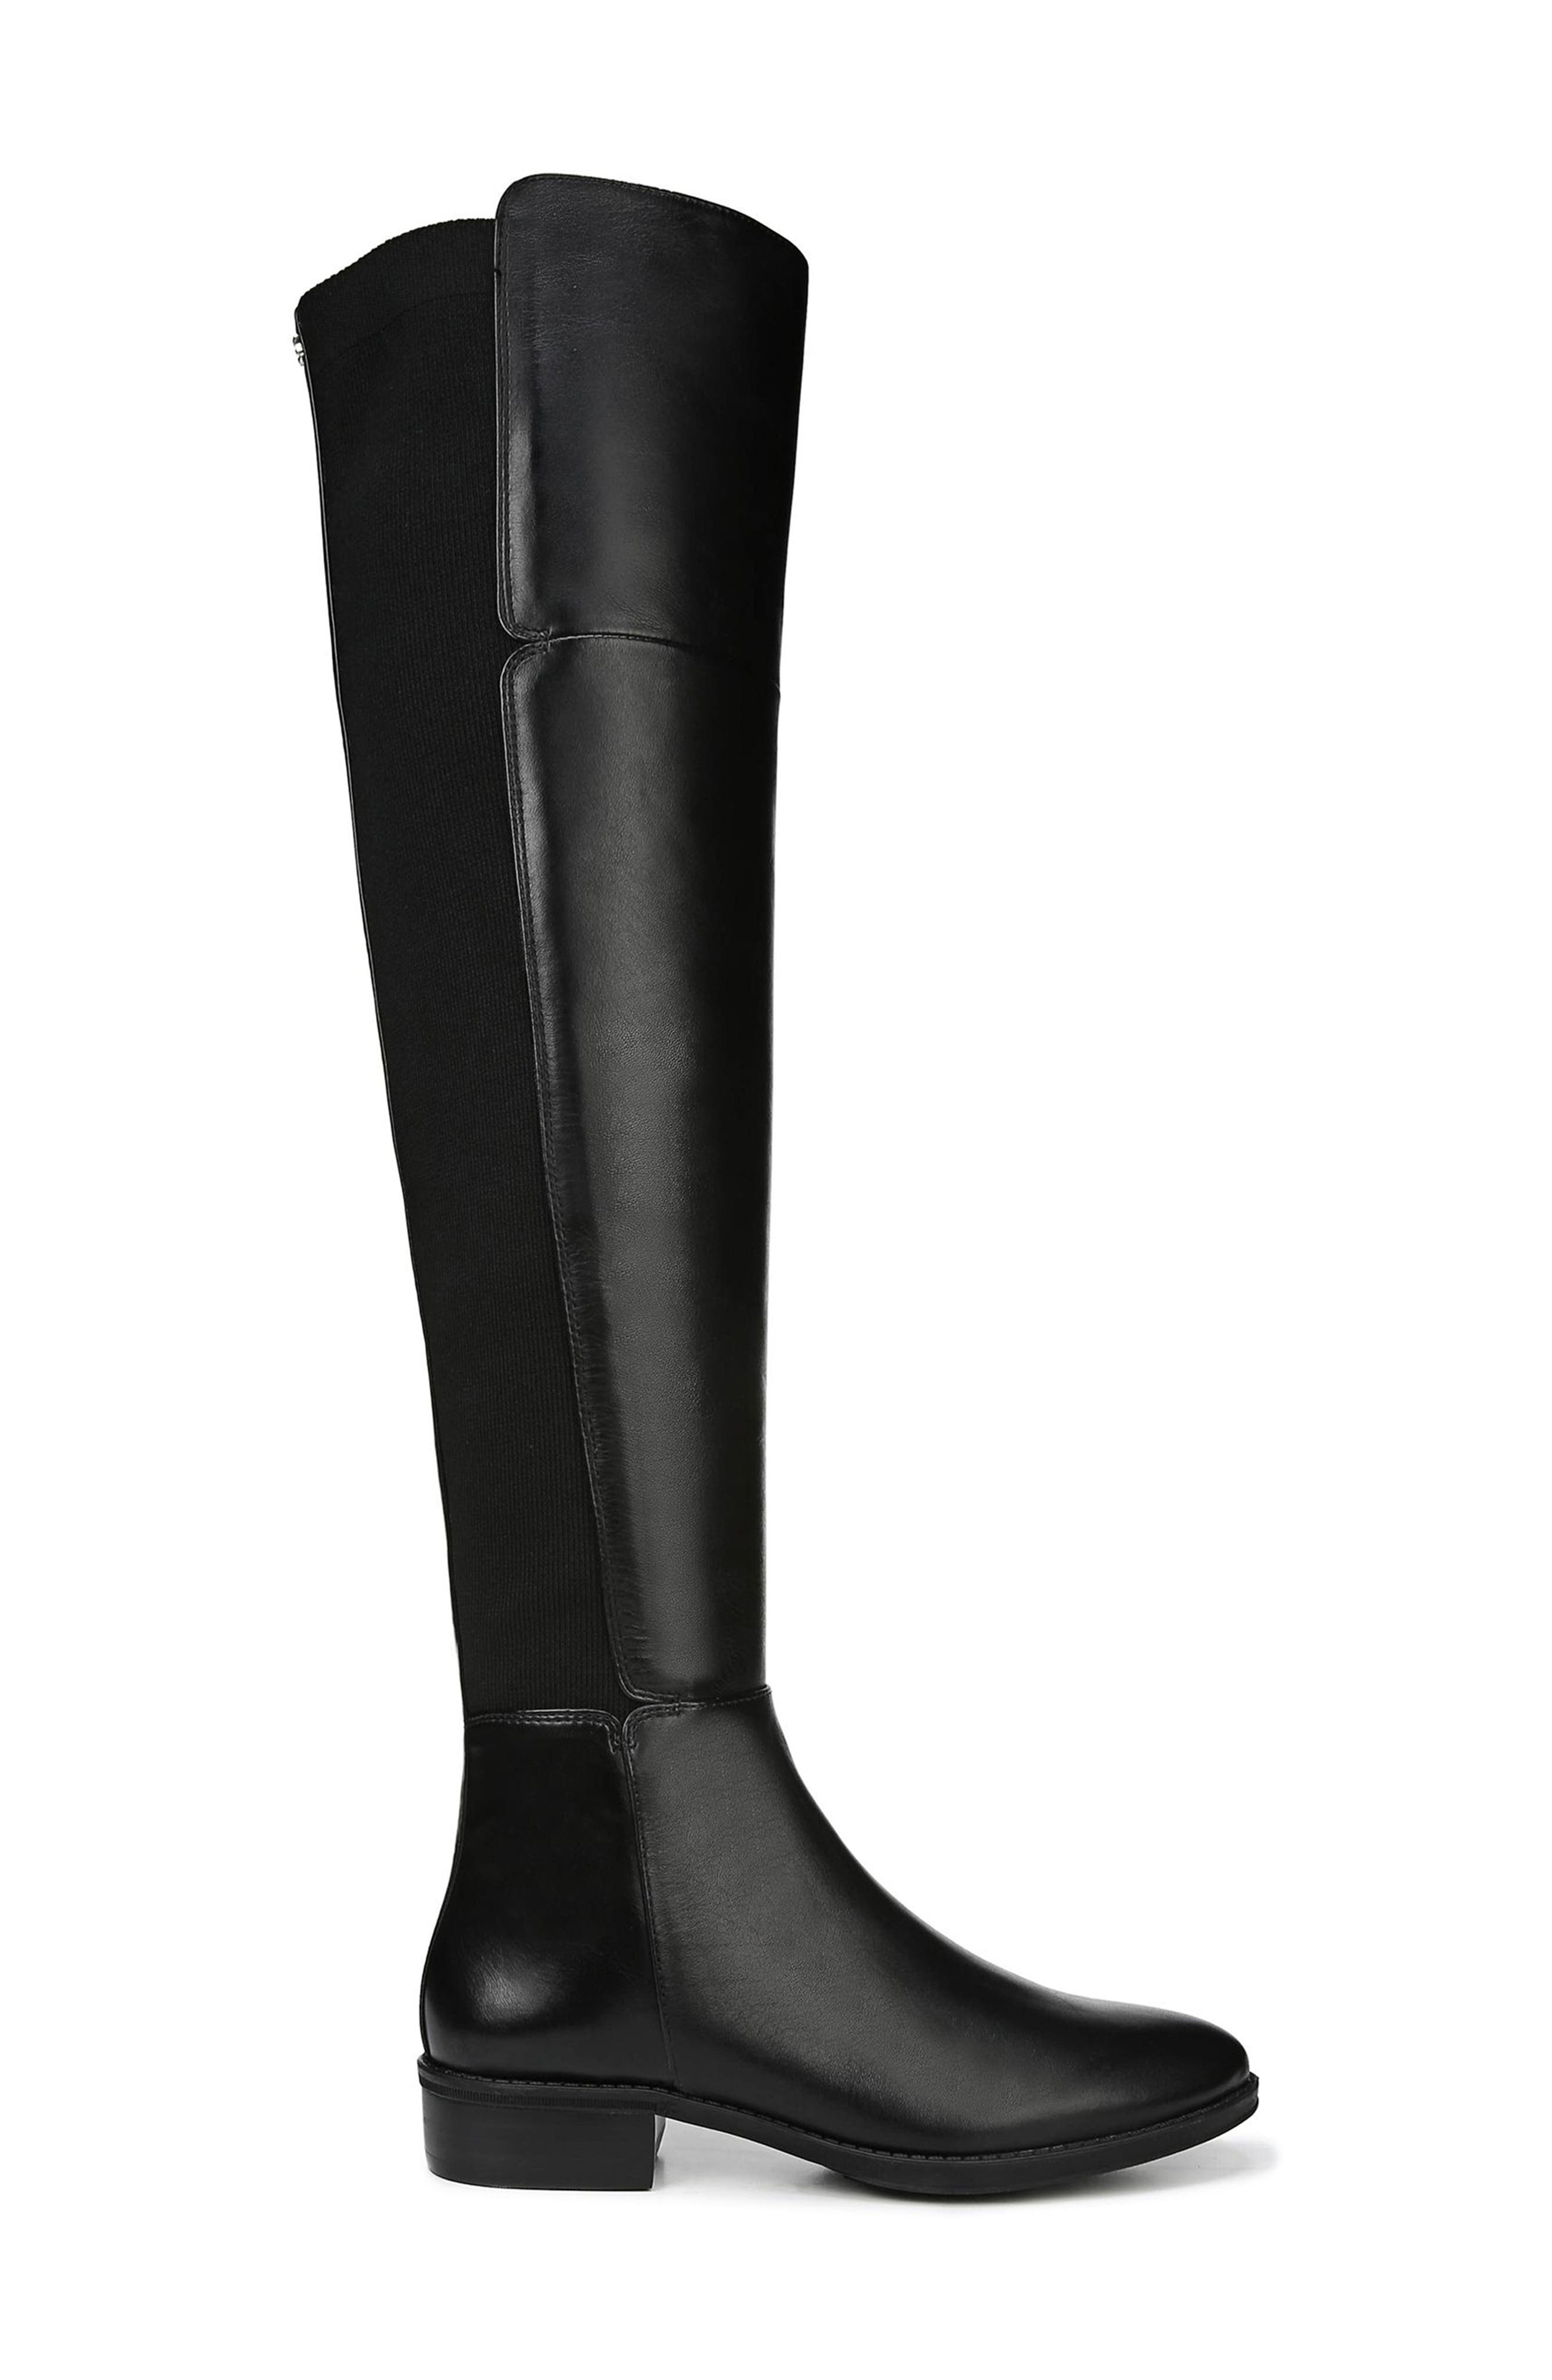 Pam Over the Knee Boot,                             Alternate thumbnail 3, color,                             BLACK LEATHER